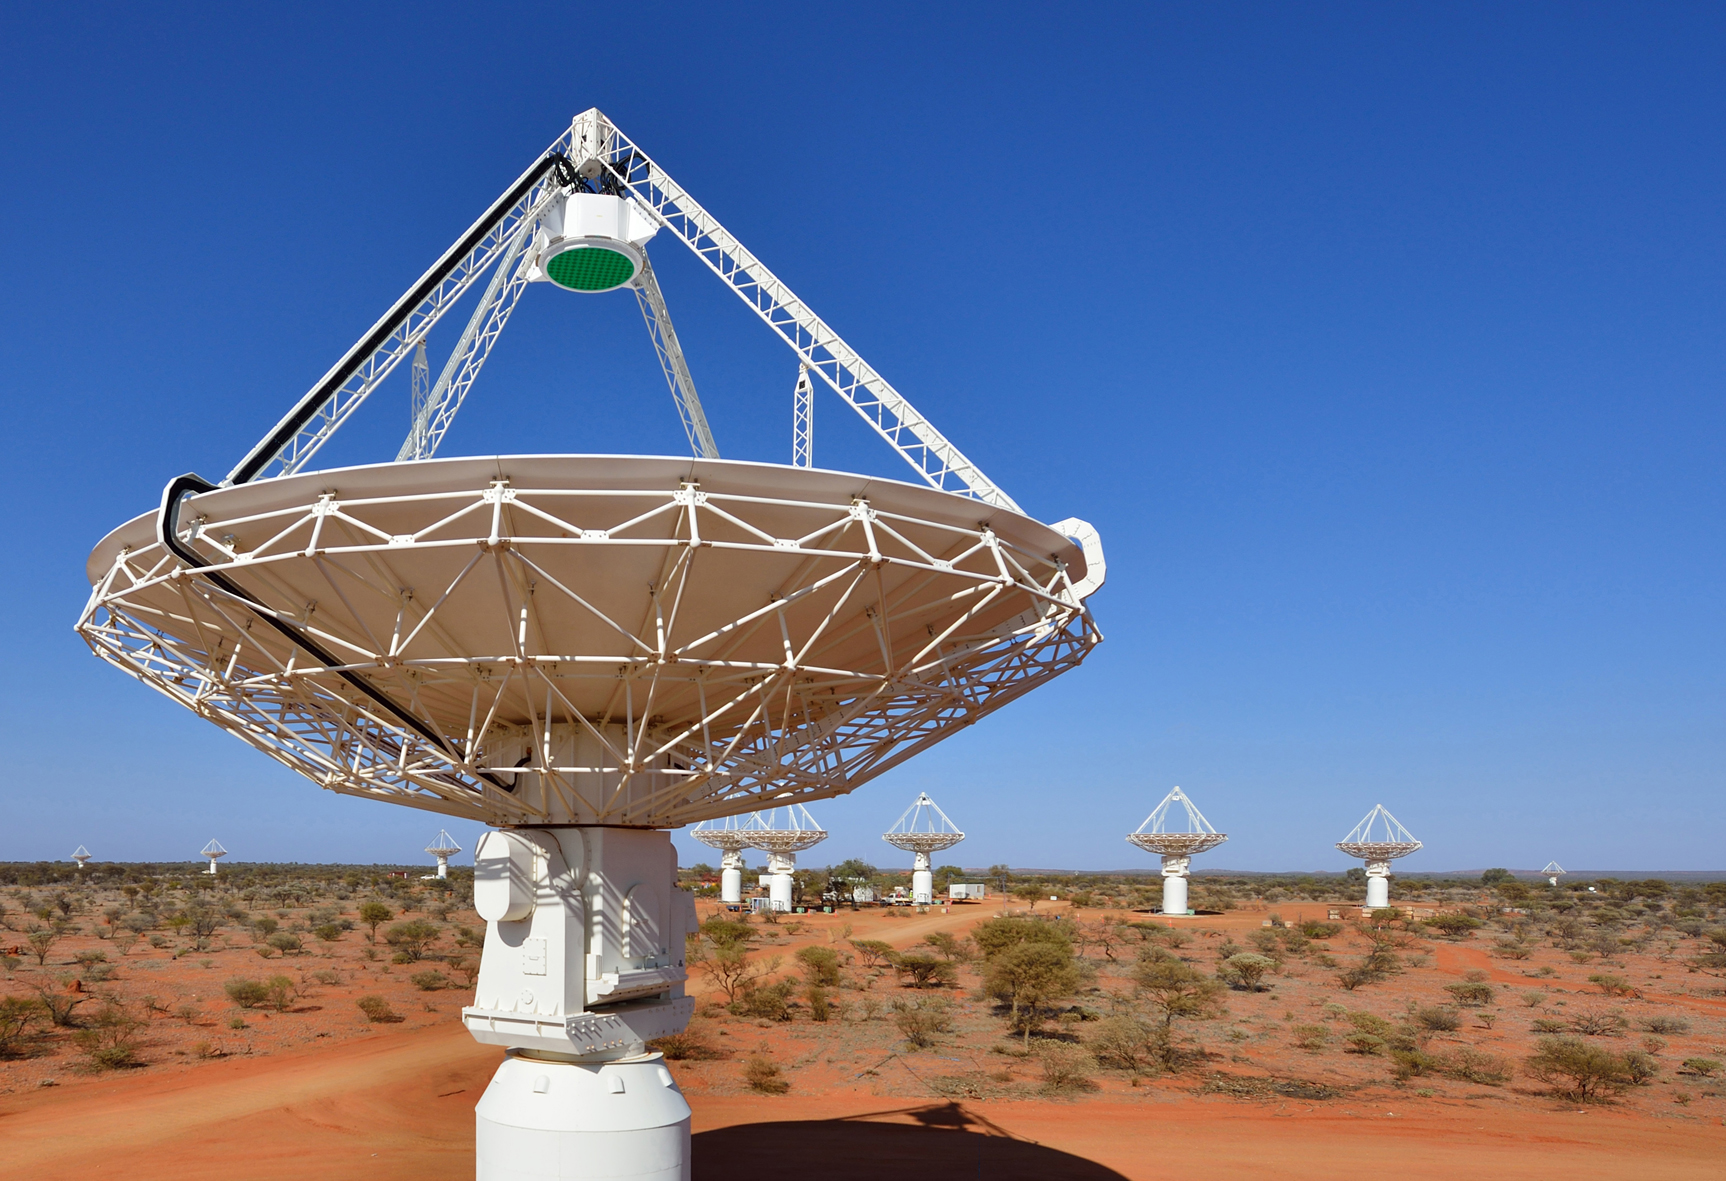 Close up of one of the ASKAP telescopes, with several others in the background.